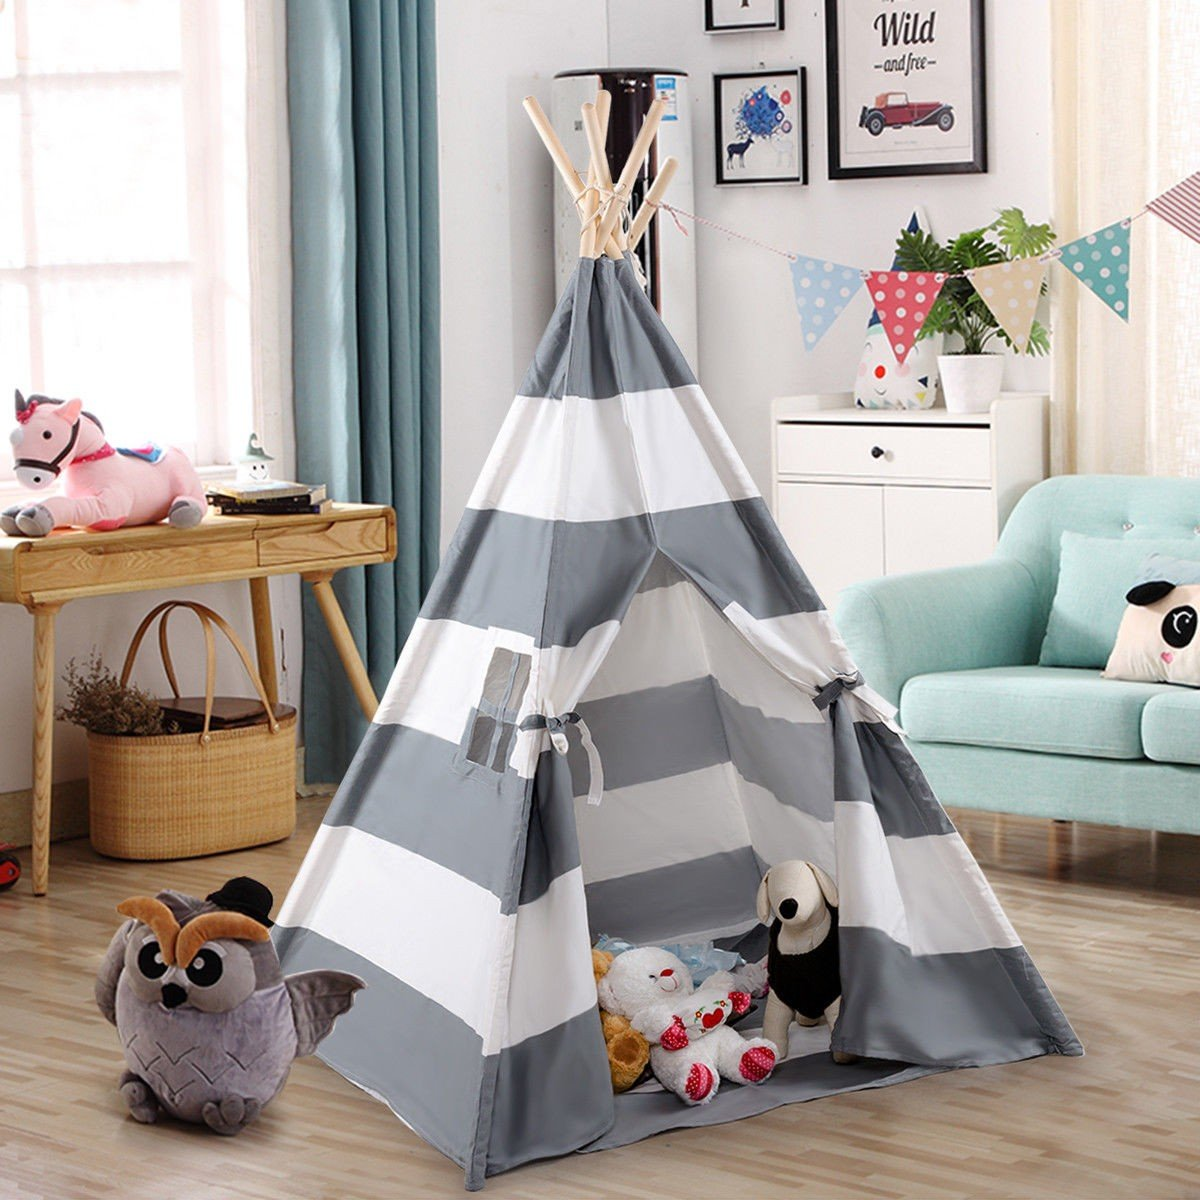 COSTWAY Kids Indian Play Tent Teepee Children Girl Boy Play House Sleeping Dome Bag Gray + FREE E - Book Only By eight24hours by COSTWAY (Image #7)